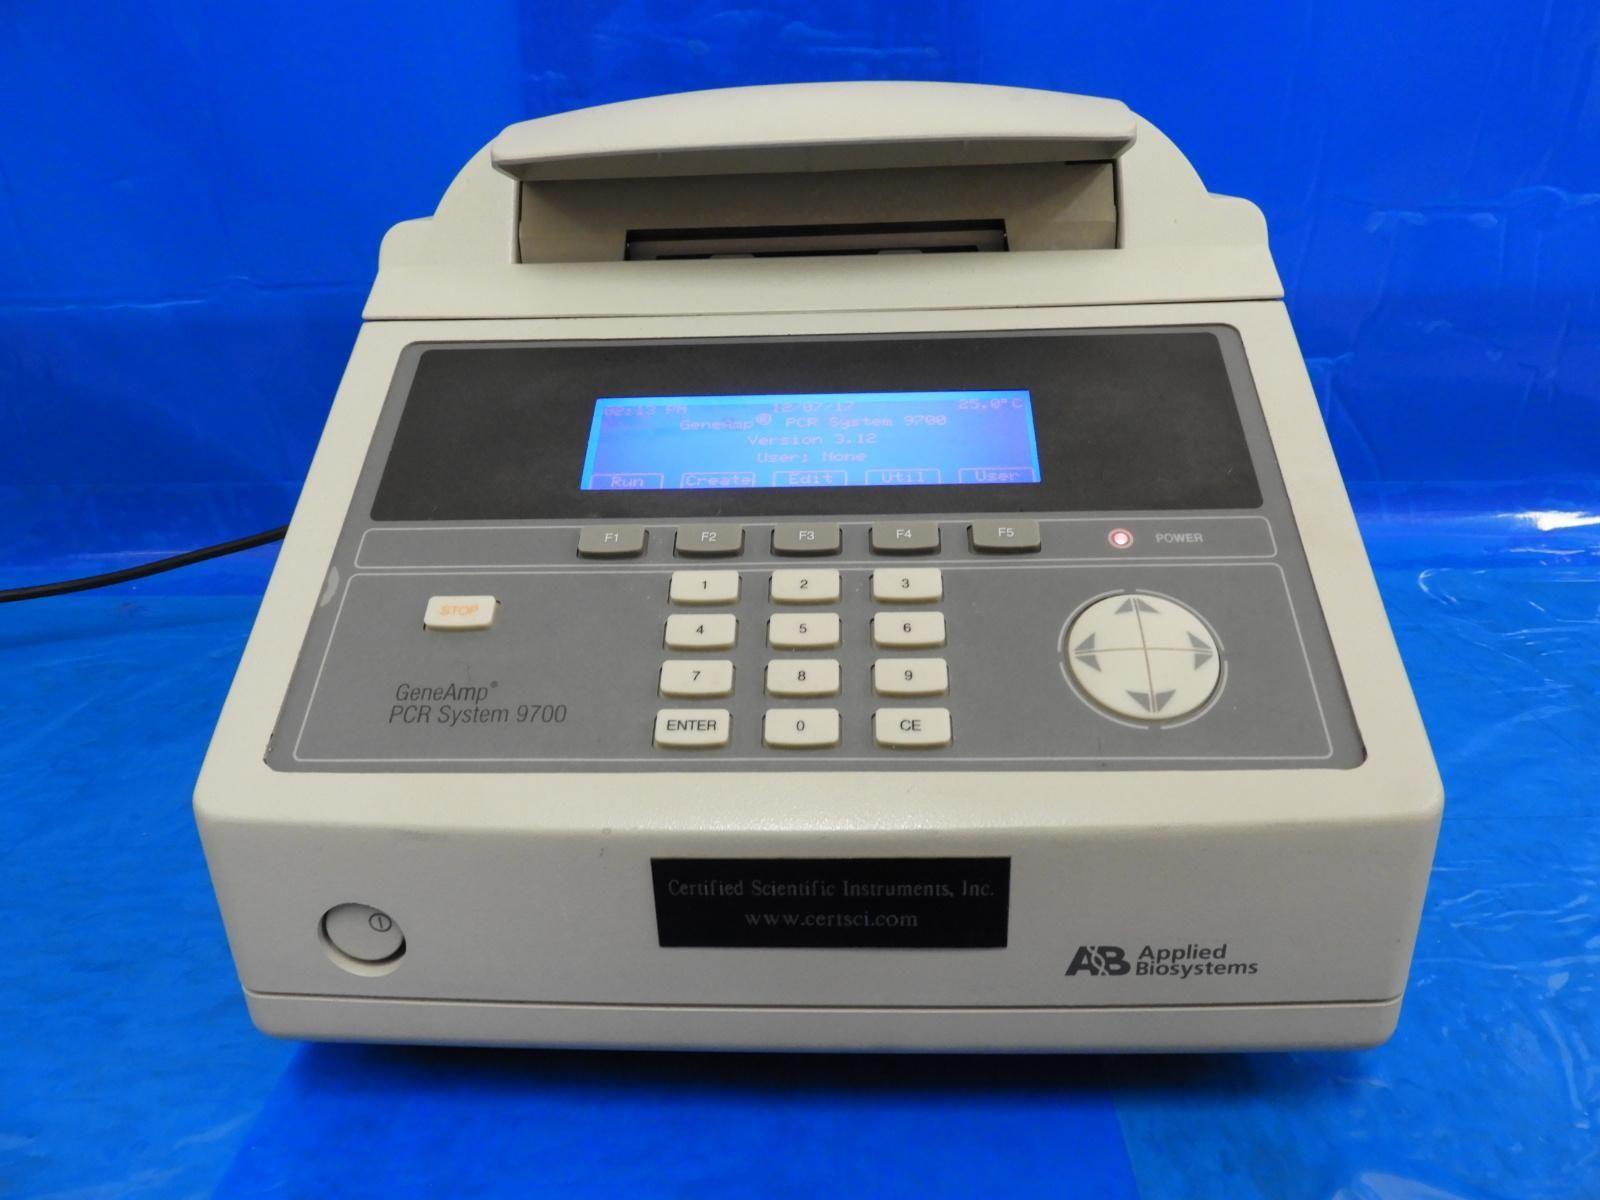 ABI 9700 Silver 96-well GeneAmp Thermal Cycler